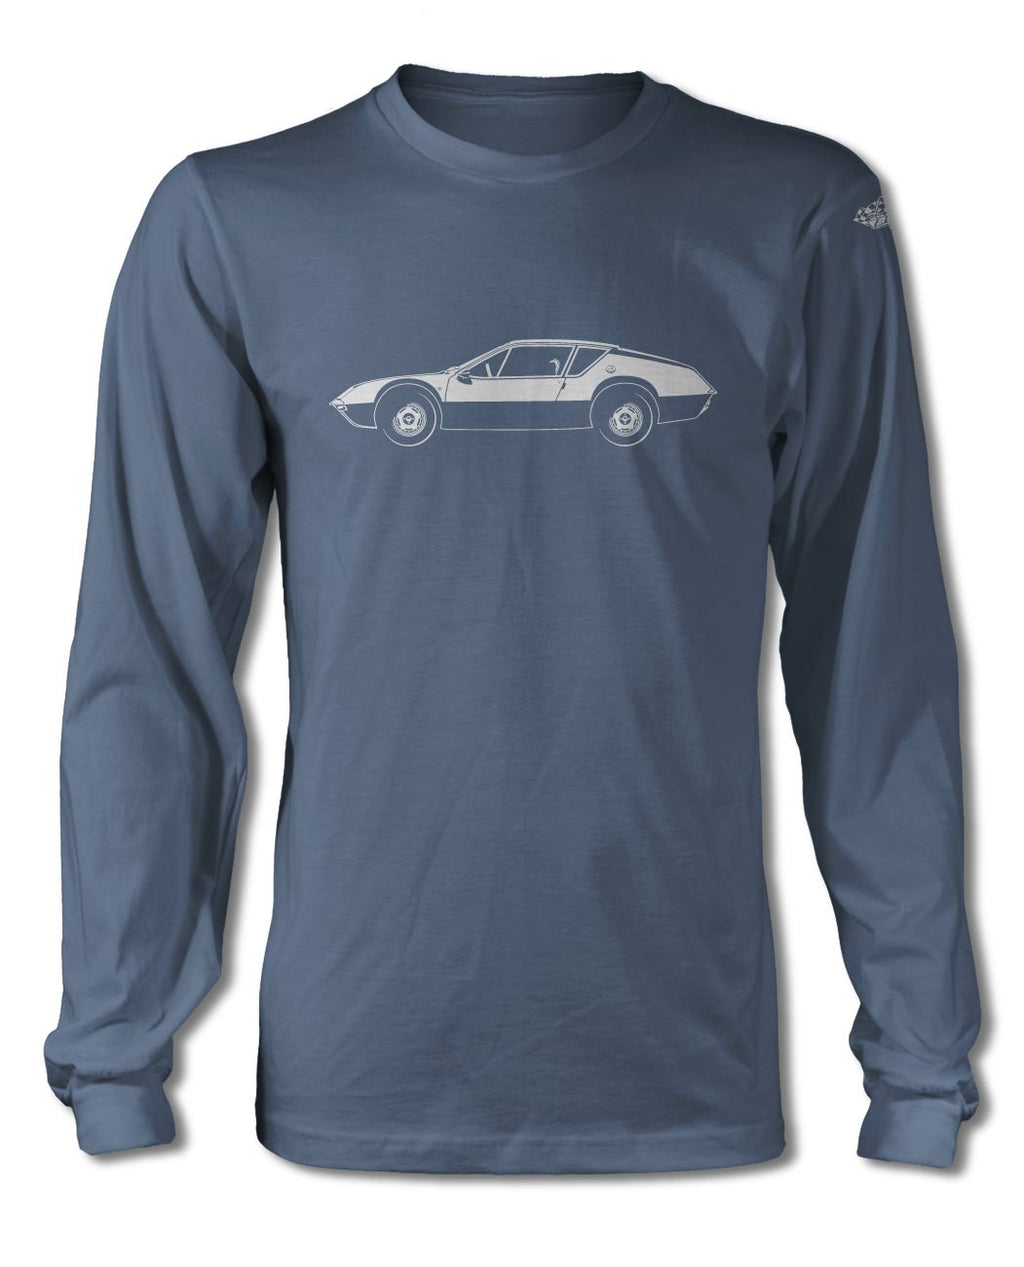 Alpine Renault A310 T-Shirt - Long Sleeves - Side View